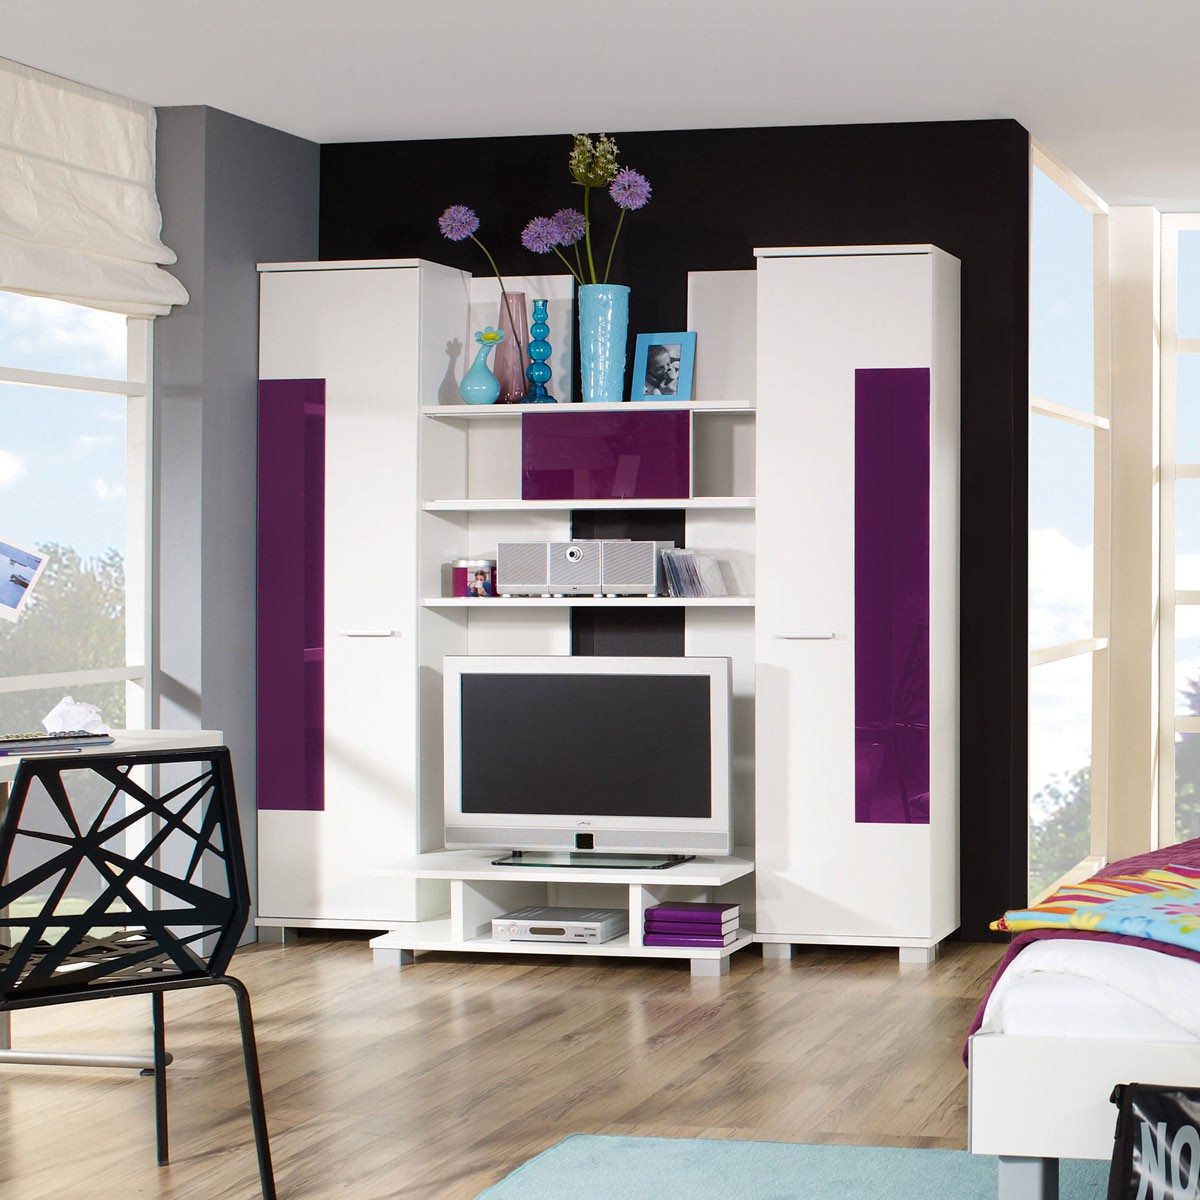 tv wohnwand anbauwand schrankwand in weiss und brombeere ebay. Black Bedroom Furniture Sets. Home Design Ideas